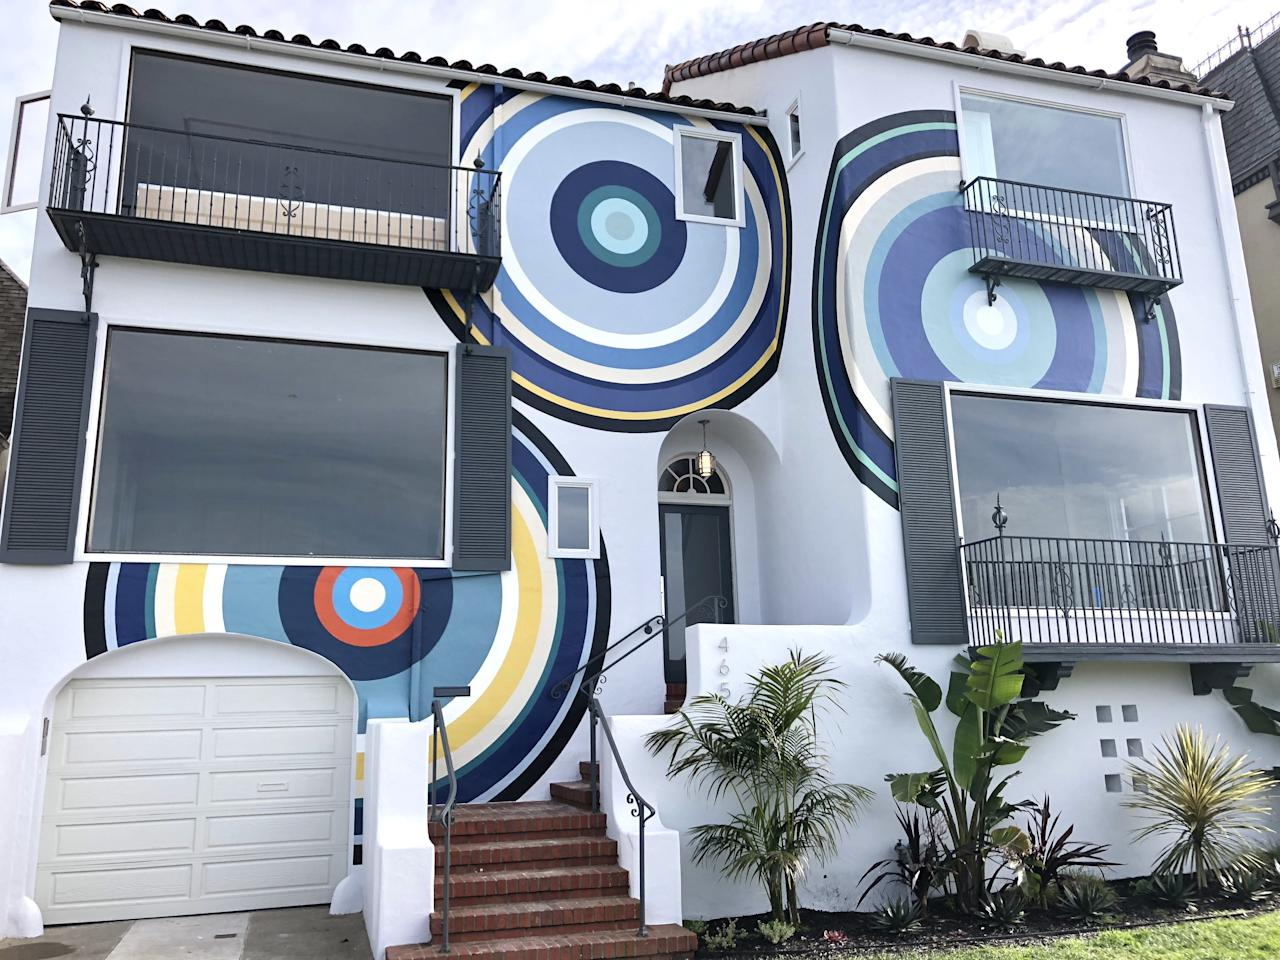 You can't miss it, even if you try. The home's façade was designed by Simon Breitbard Fine Arts resident artist (pun intended) AJ Oishi. In essence a large-scale mural painting spread across the house, the work provokes both contemplation and conversation with its three oversize swirling bullseyes.